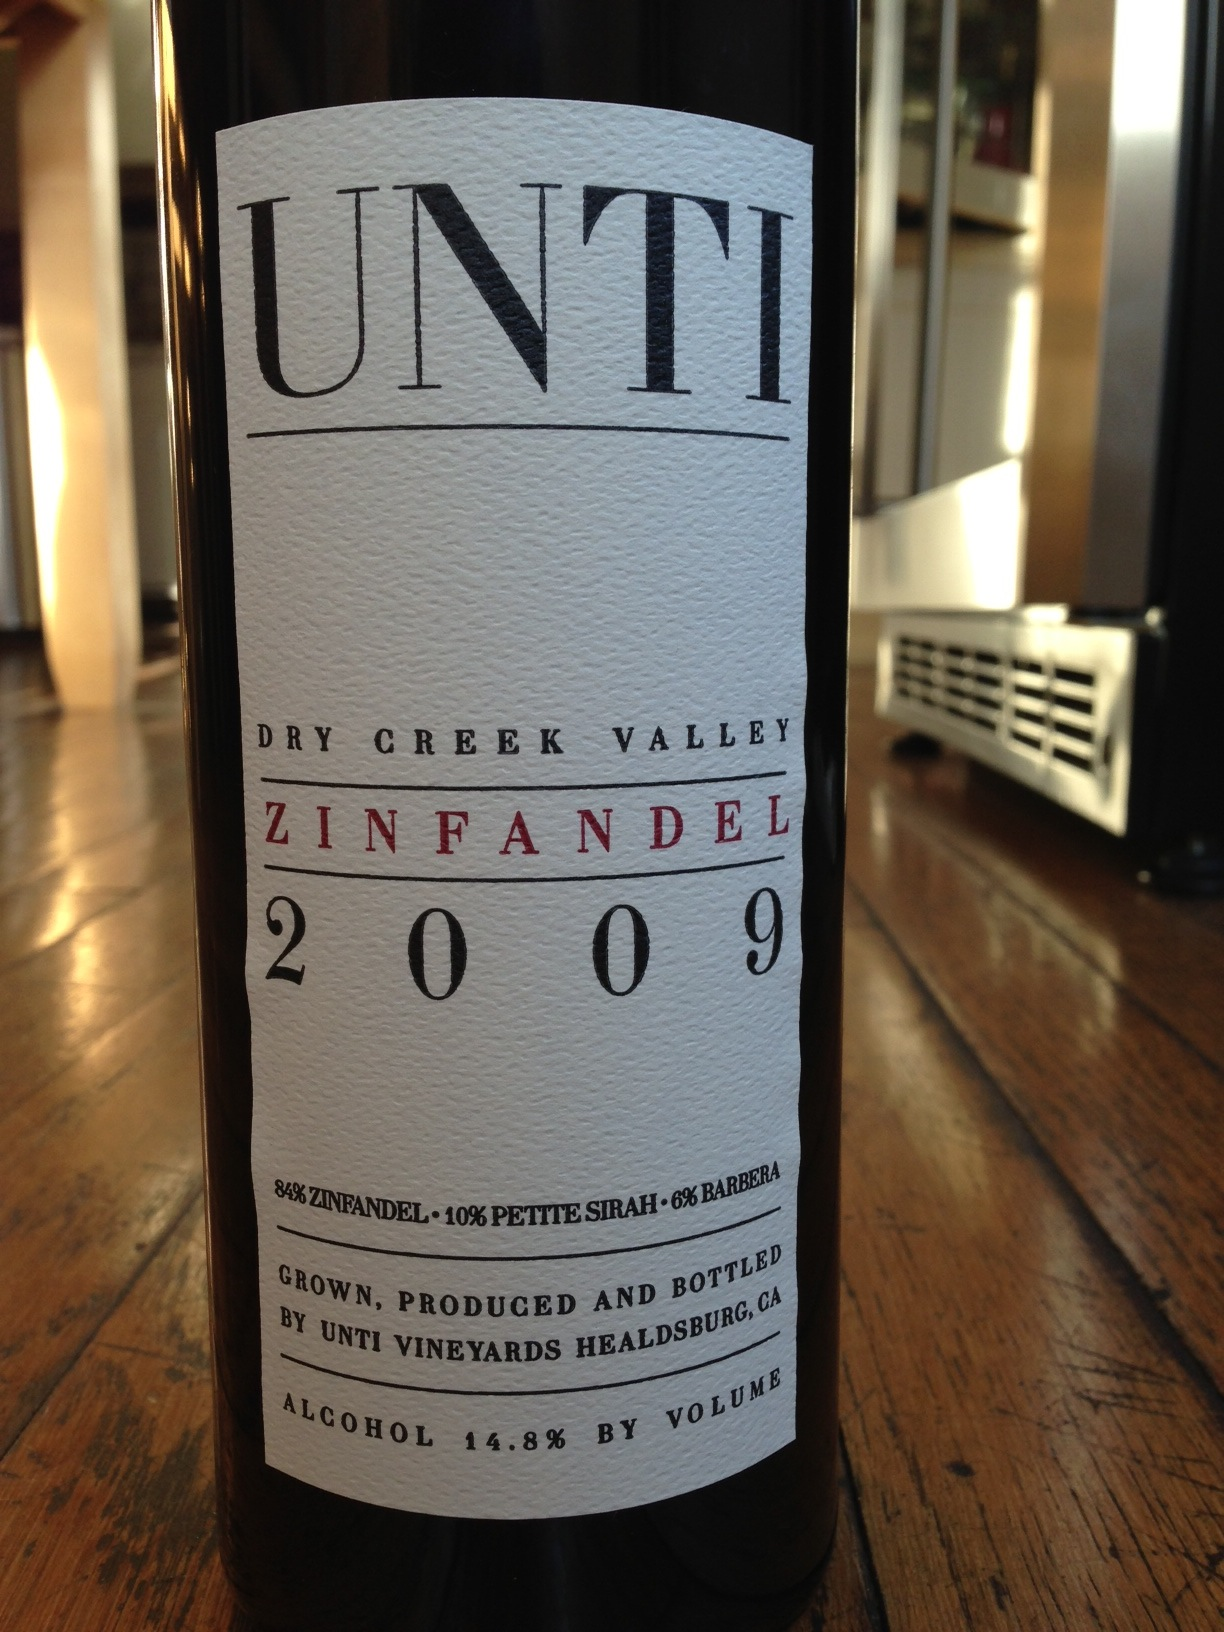 Unti 2009 Zinfandel Dry Creek Valley